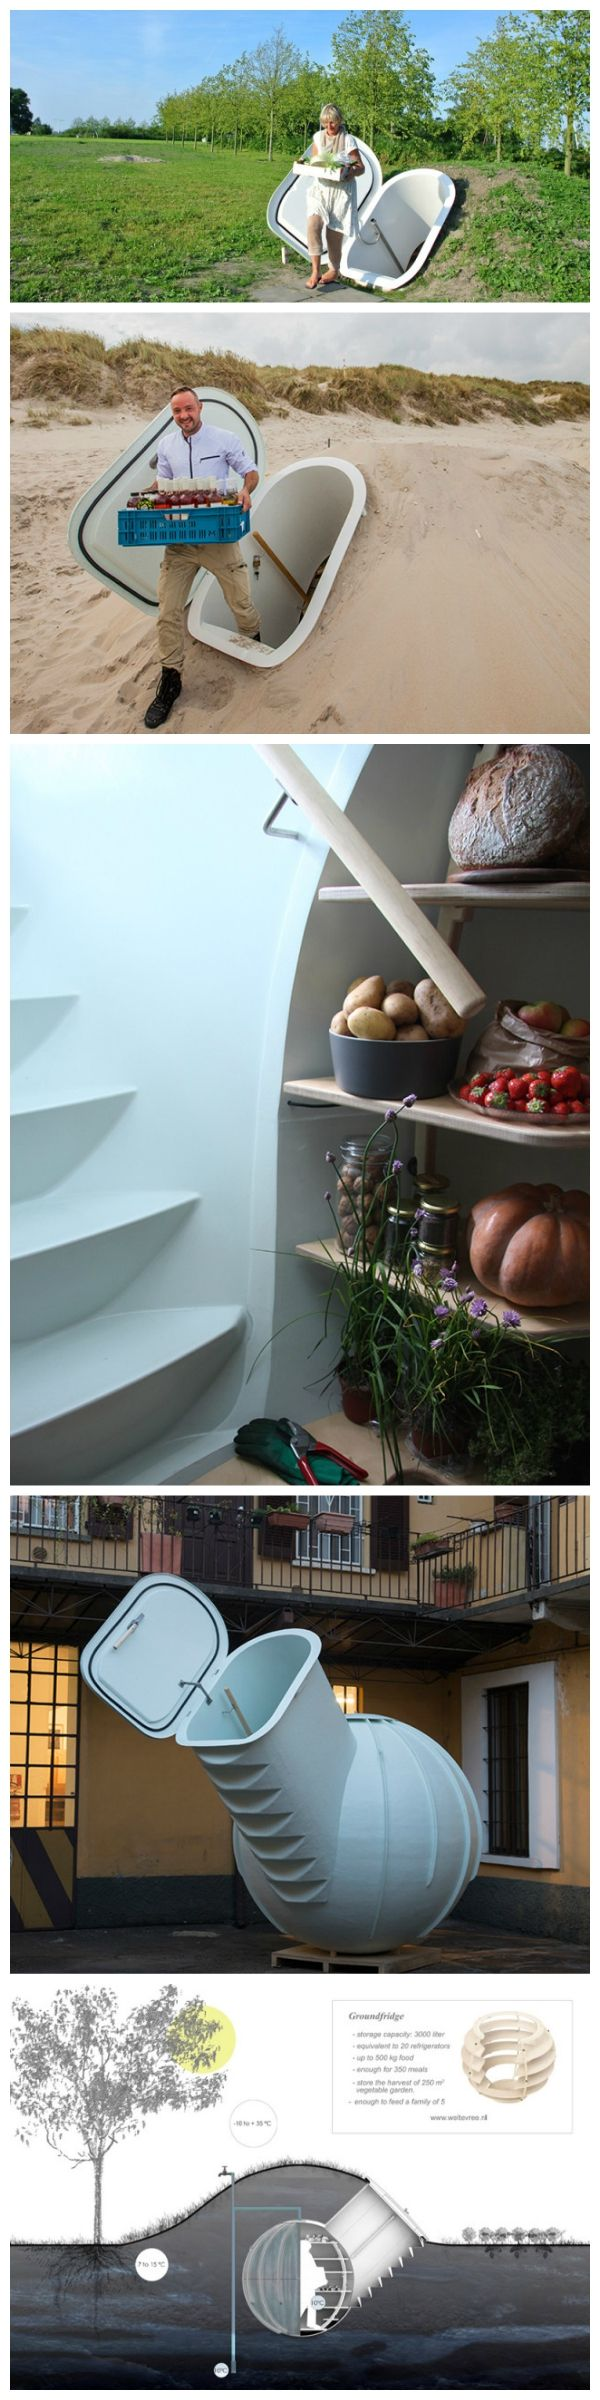 The Groundfridge: the best solution for off-grid food storage #bunkerplans